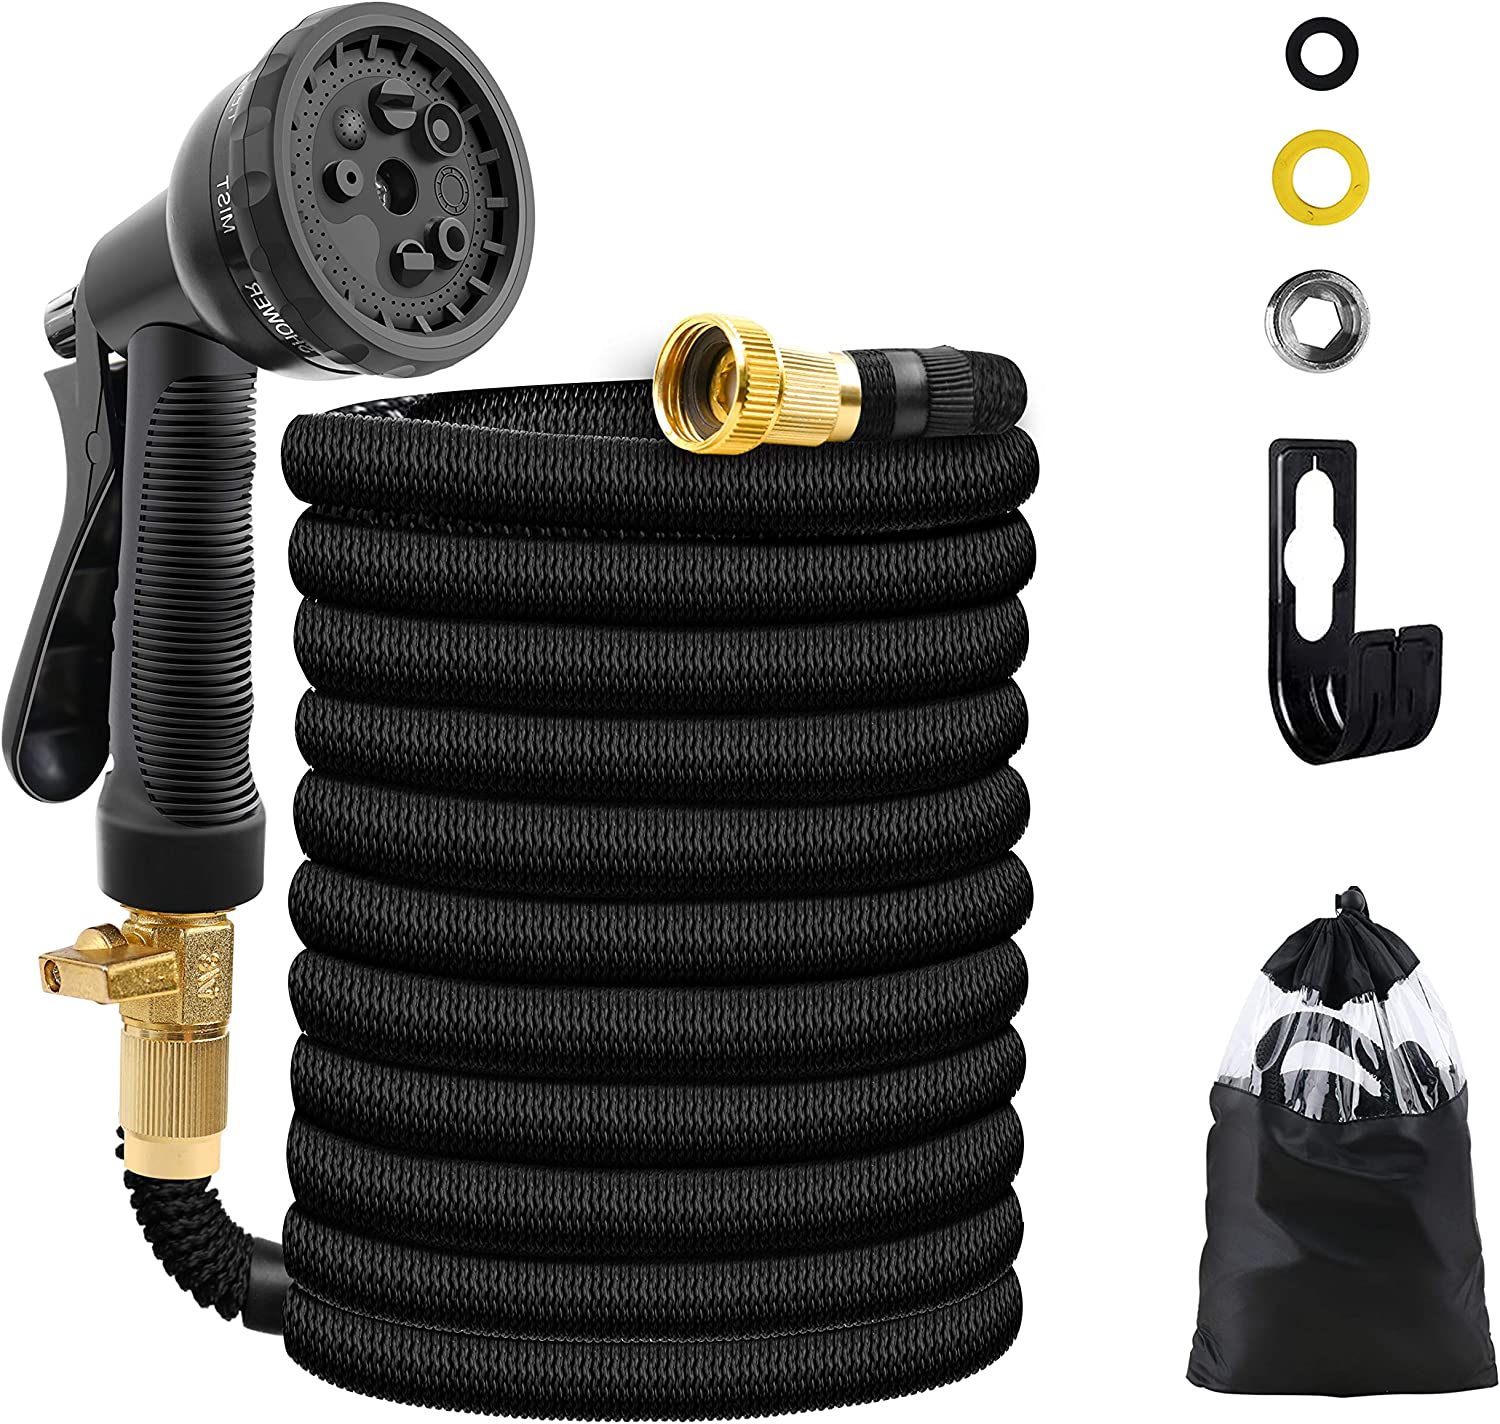 UJUJIA Expandable Garden Hose, Extra Strength Fabric, Flexible Expanding Water Hose with 8 Function Spray Nozzle (75)